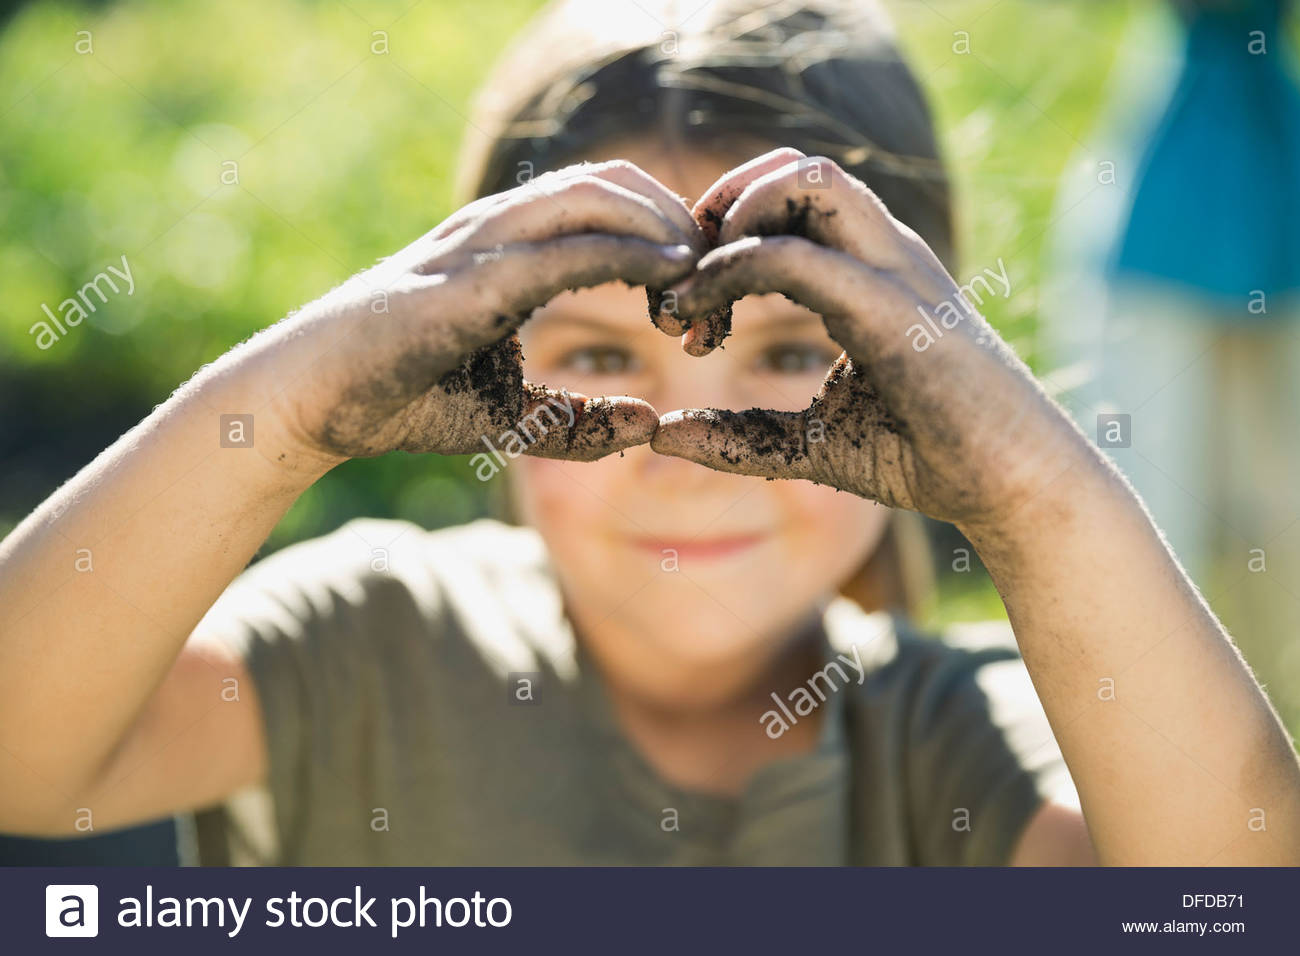 Little girl making heart shape with dirt covered hands - Stock Image